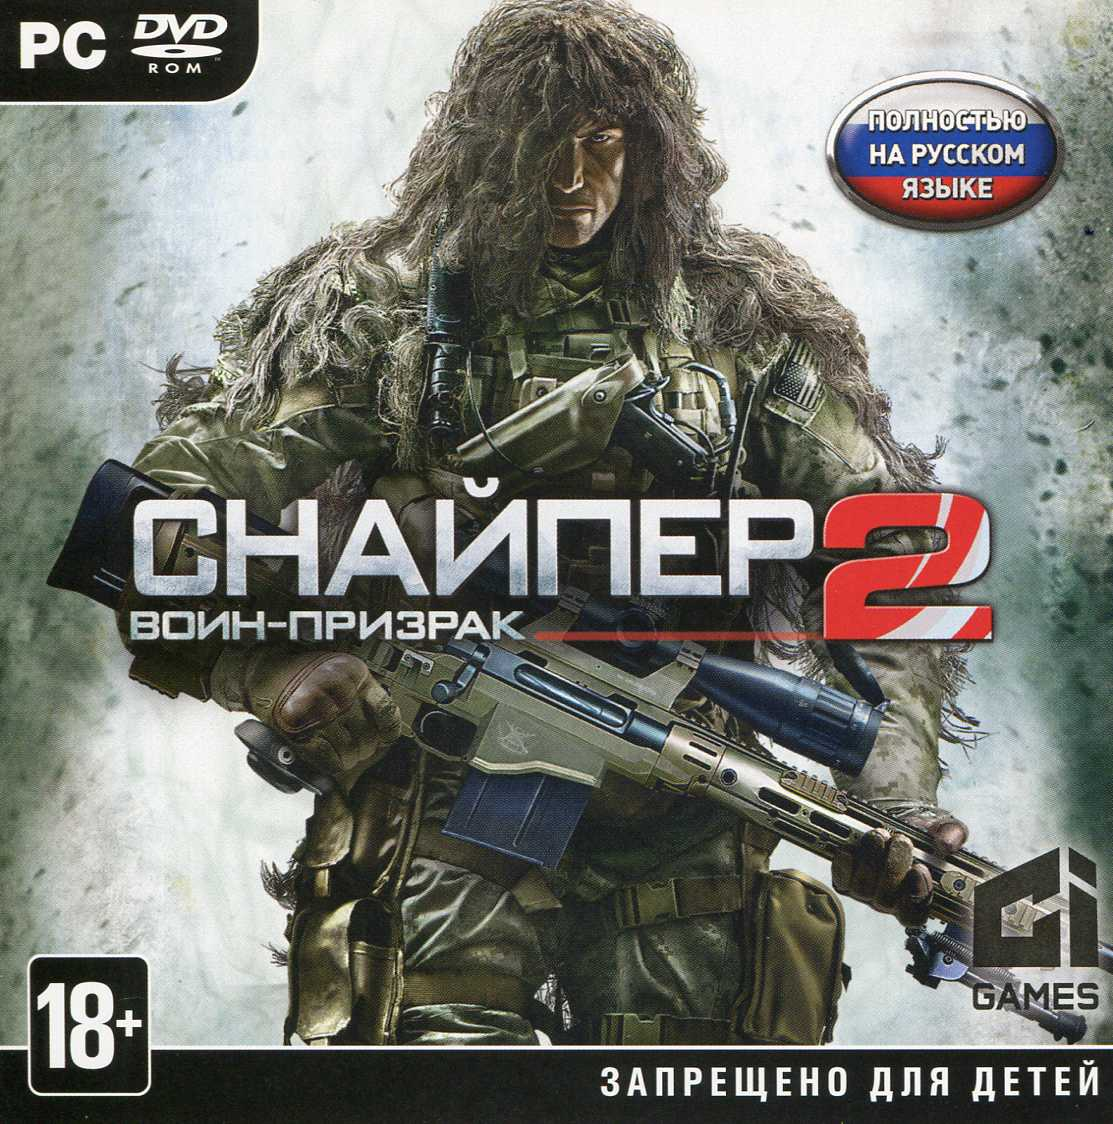 Sniper: Ghost Warrior 2 (activation key in Steam)